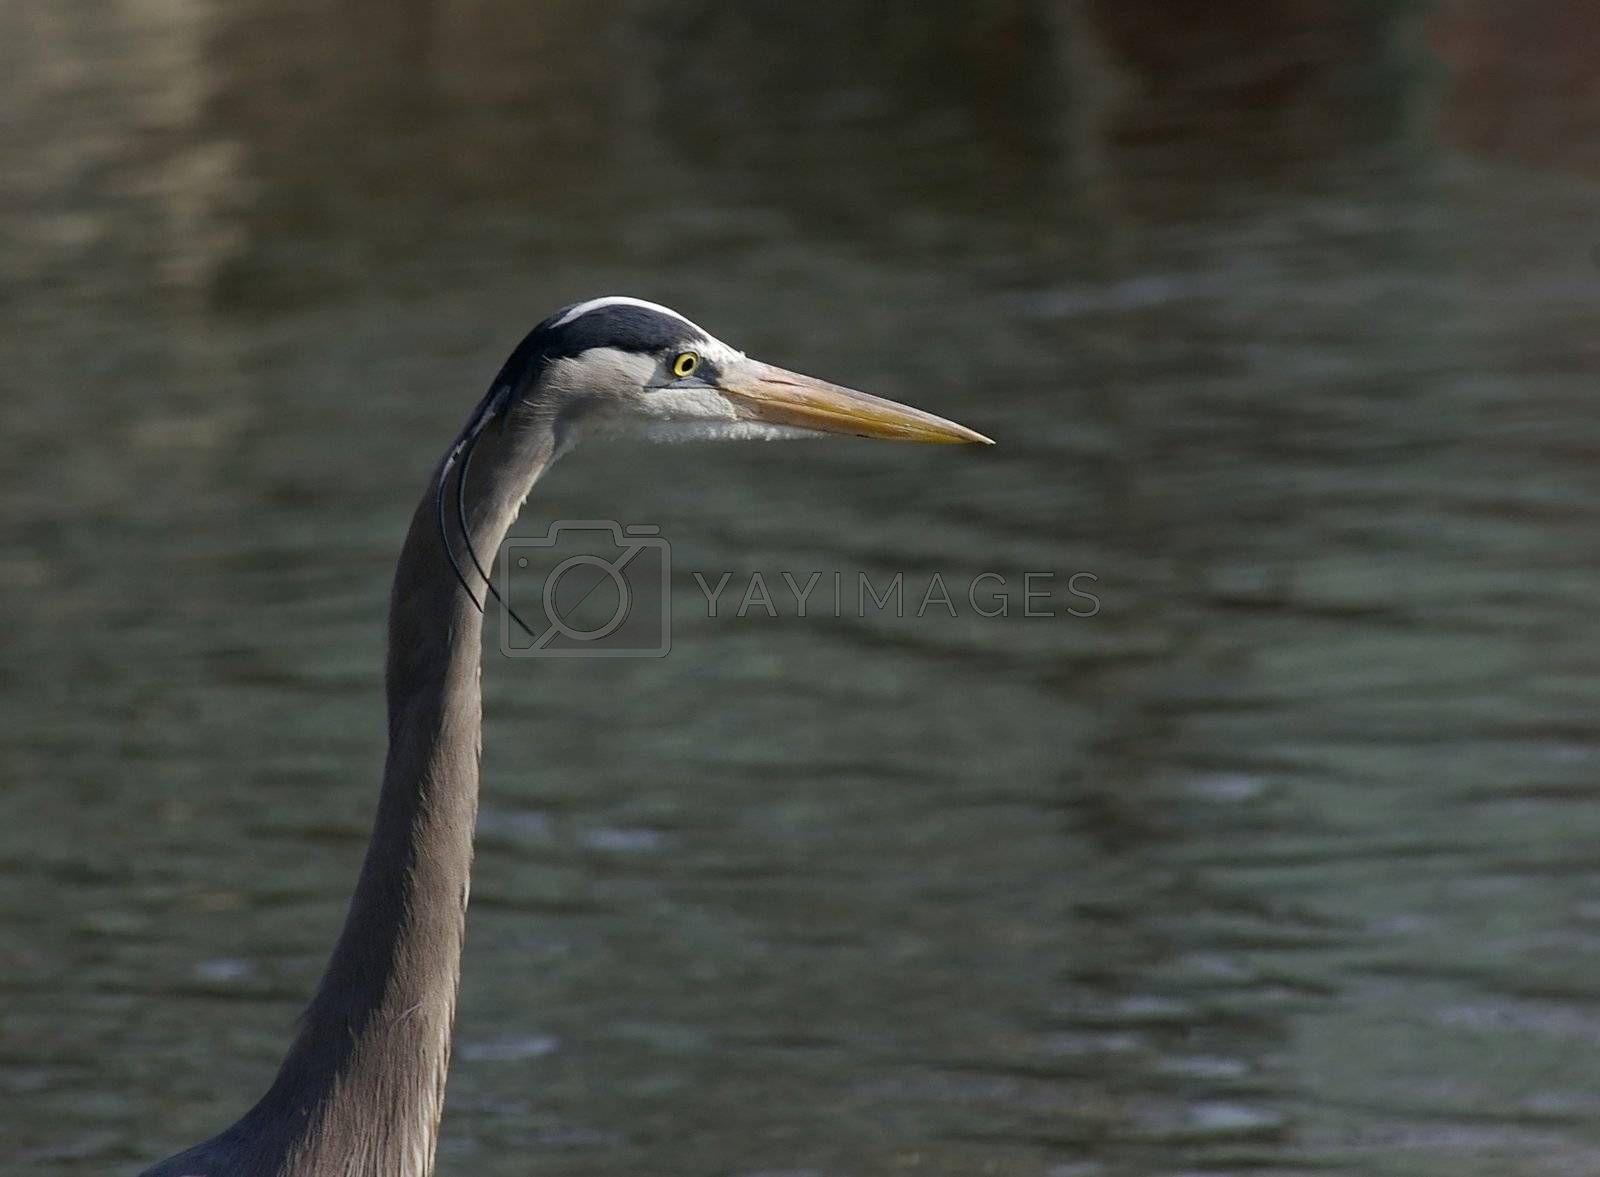 Great Blue Heron with mating plumage against a water background